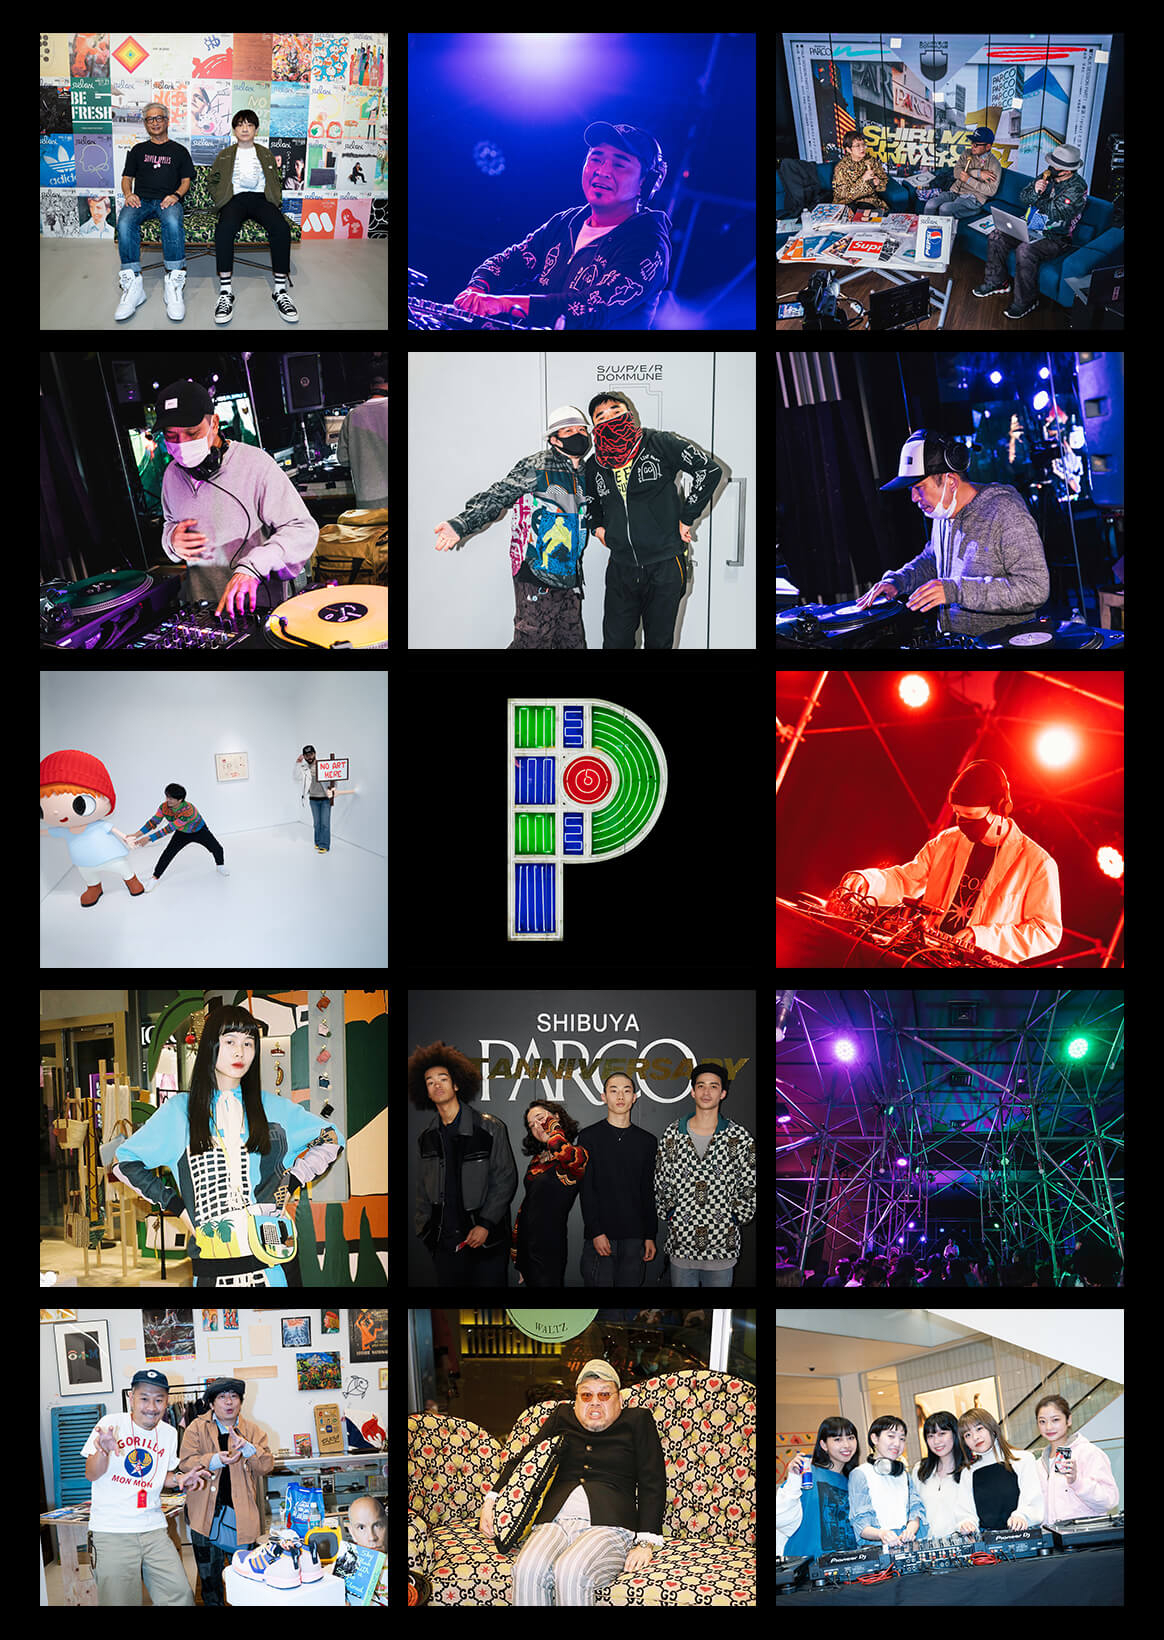 SHIBUYA PARCO 1st ANNIVERSARY | Night when luxurious guests gather. SNAP & live report